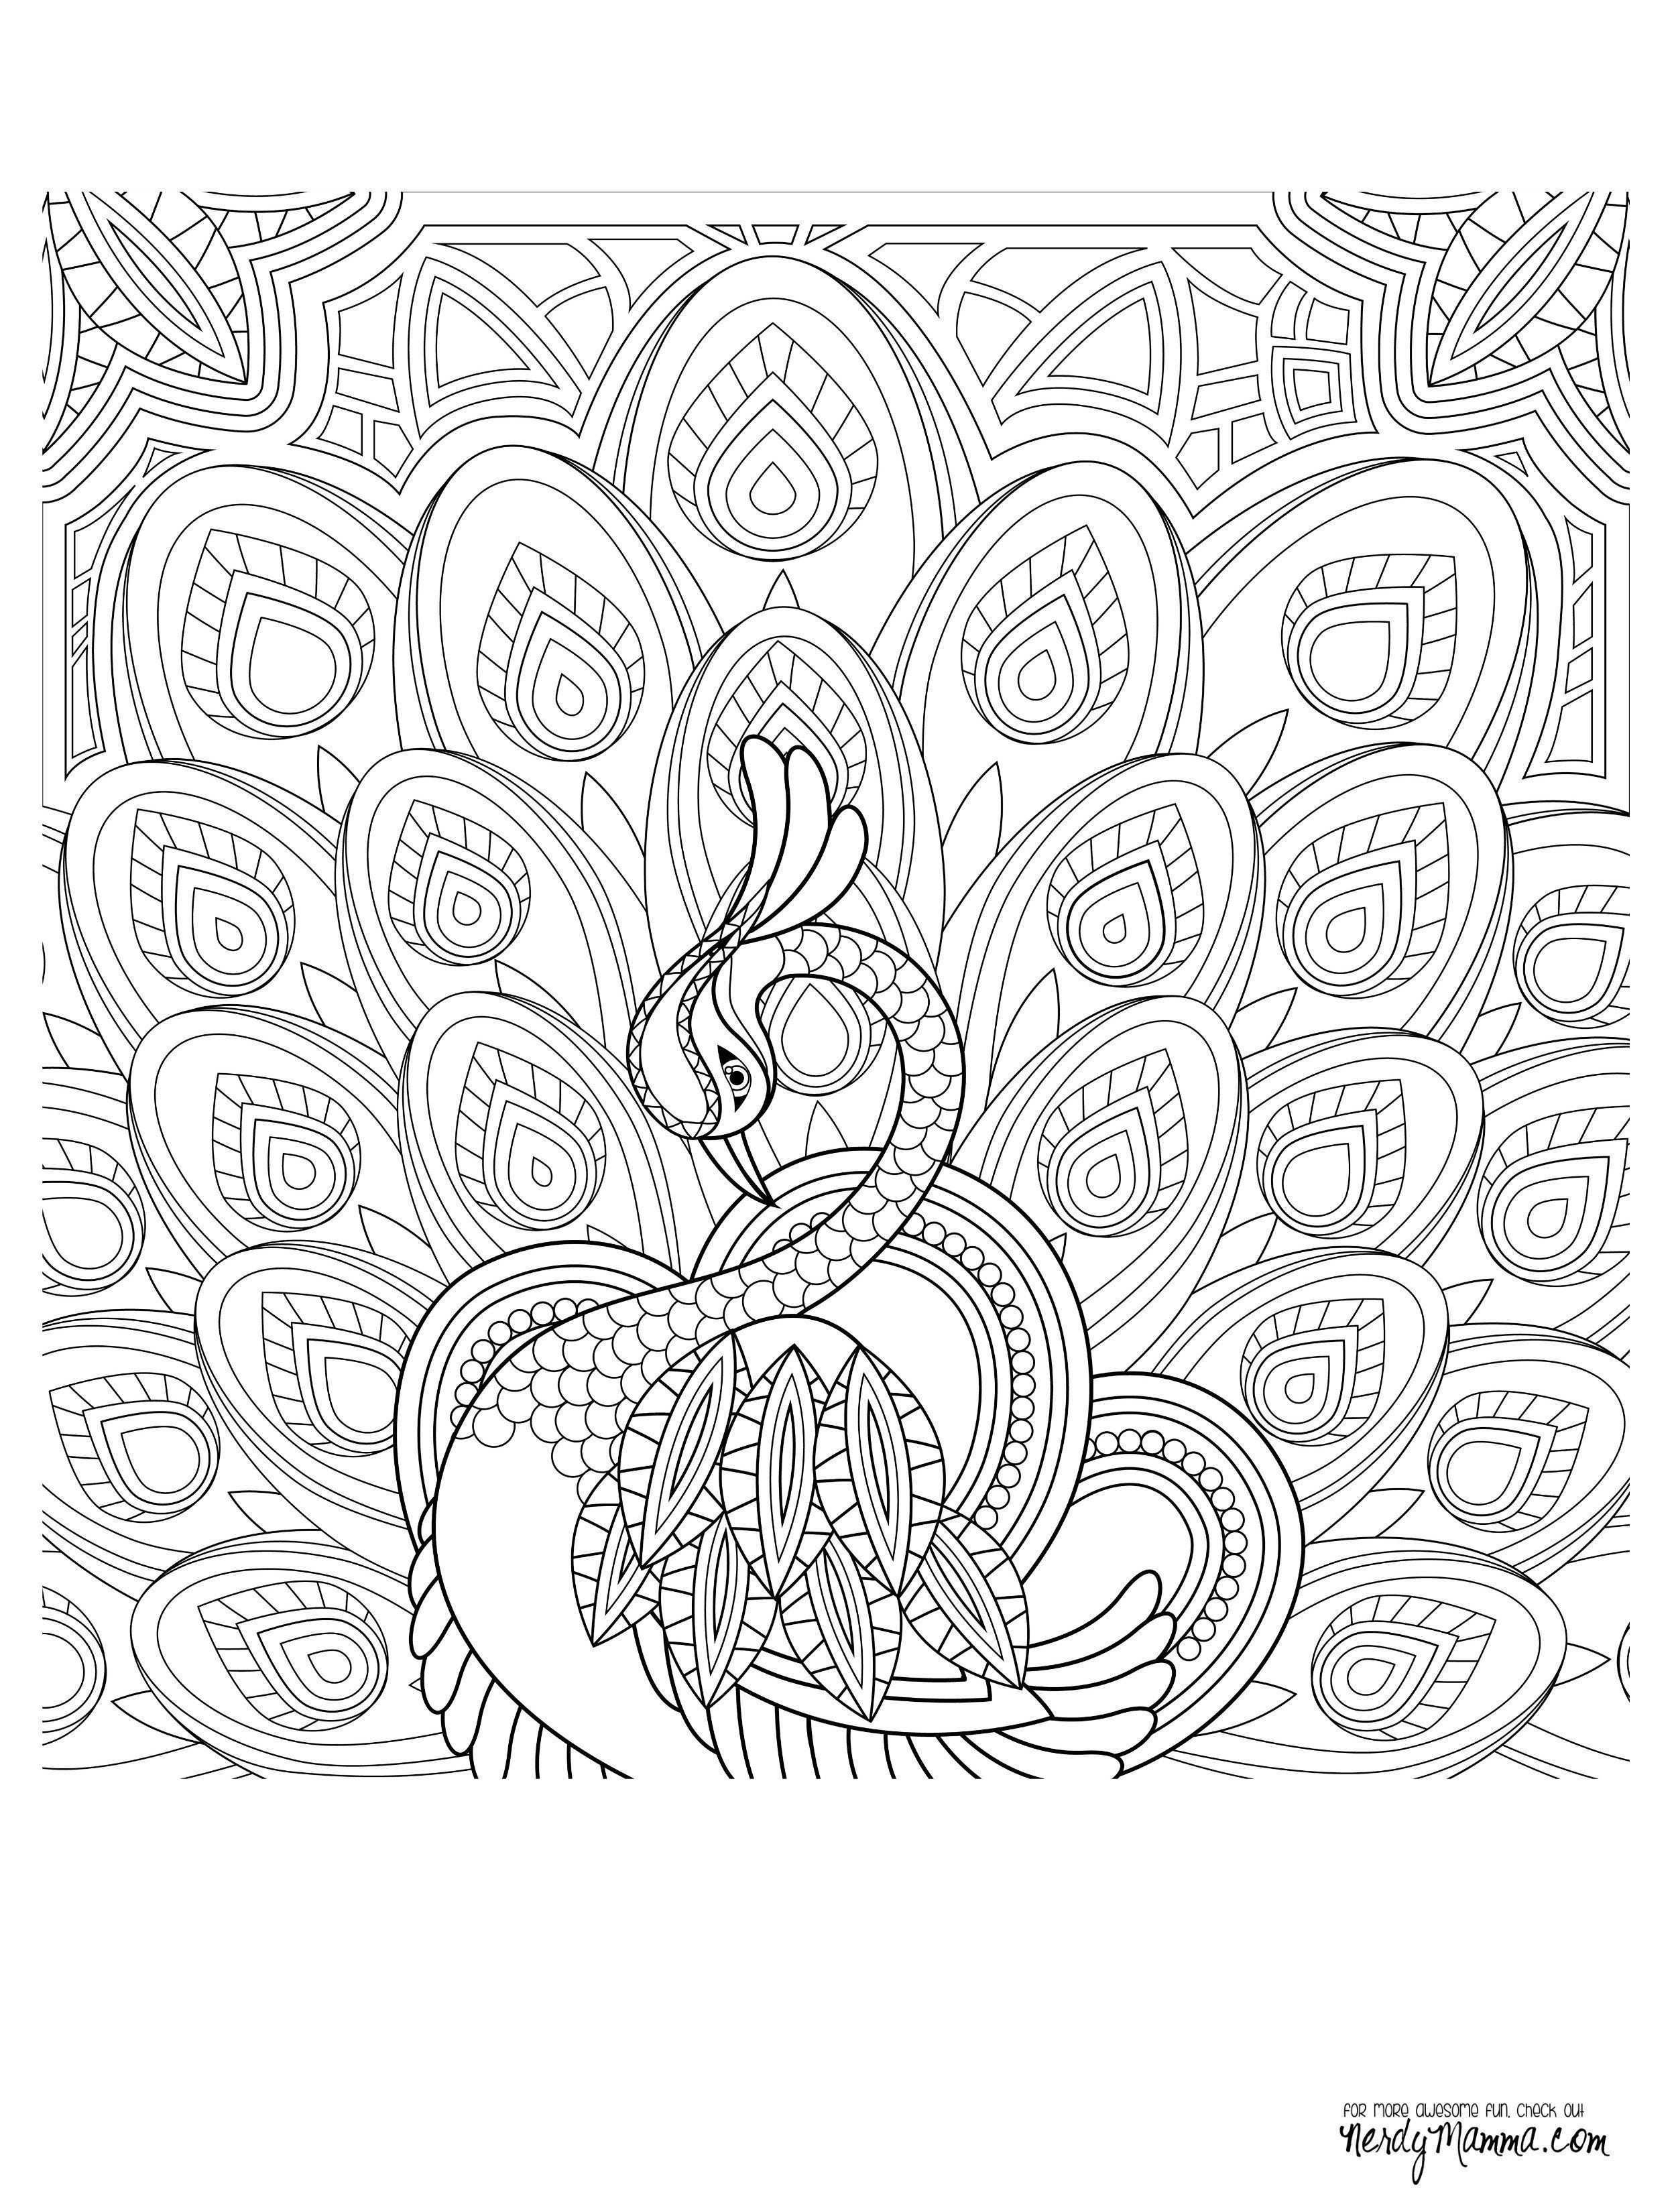 Relaxing Coloring Pages Relaxing Coloring Pages Best Of Cool Cute Printable Coloring Pages